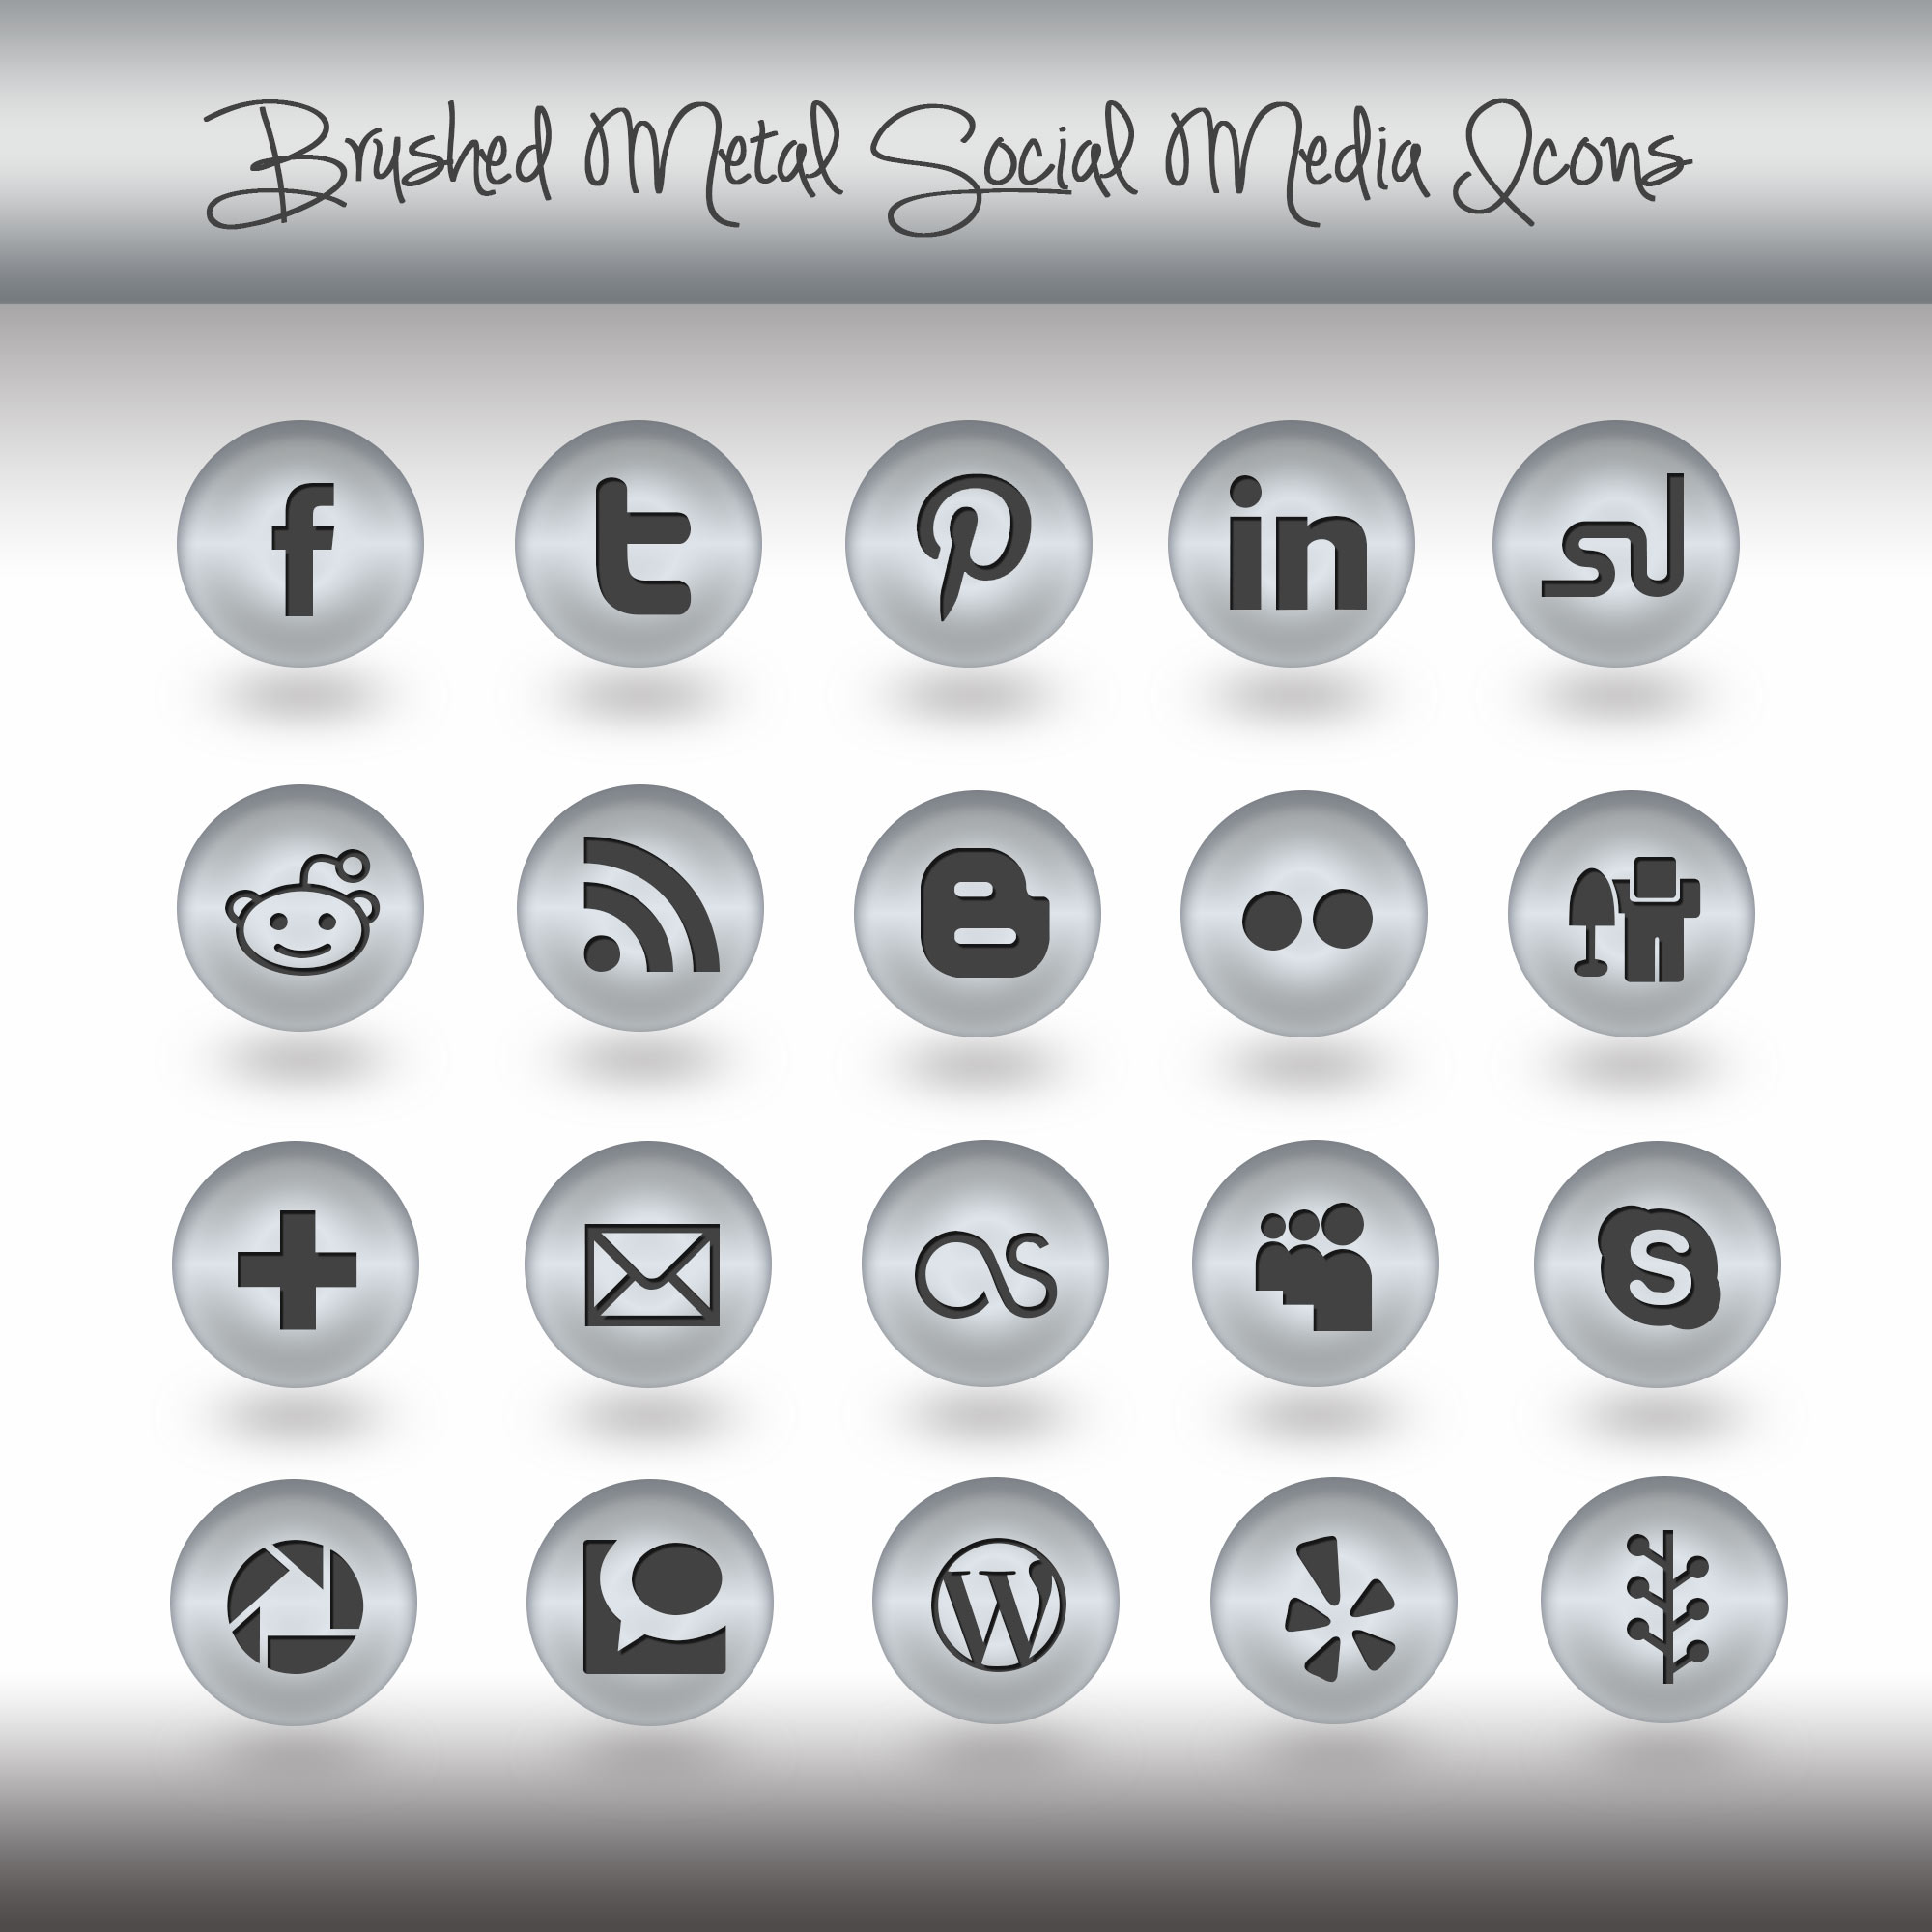 free brushed metal social media icons pack fresh view concepts